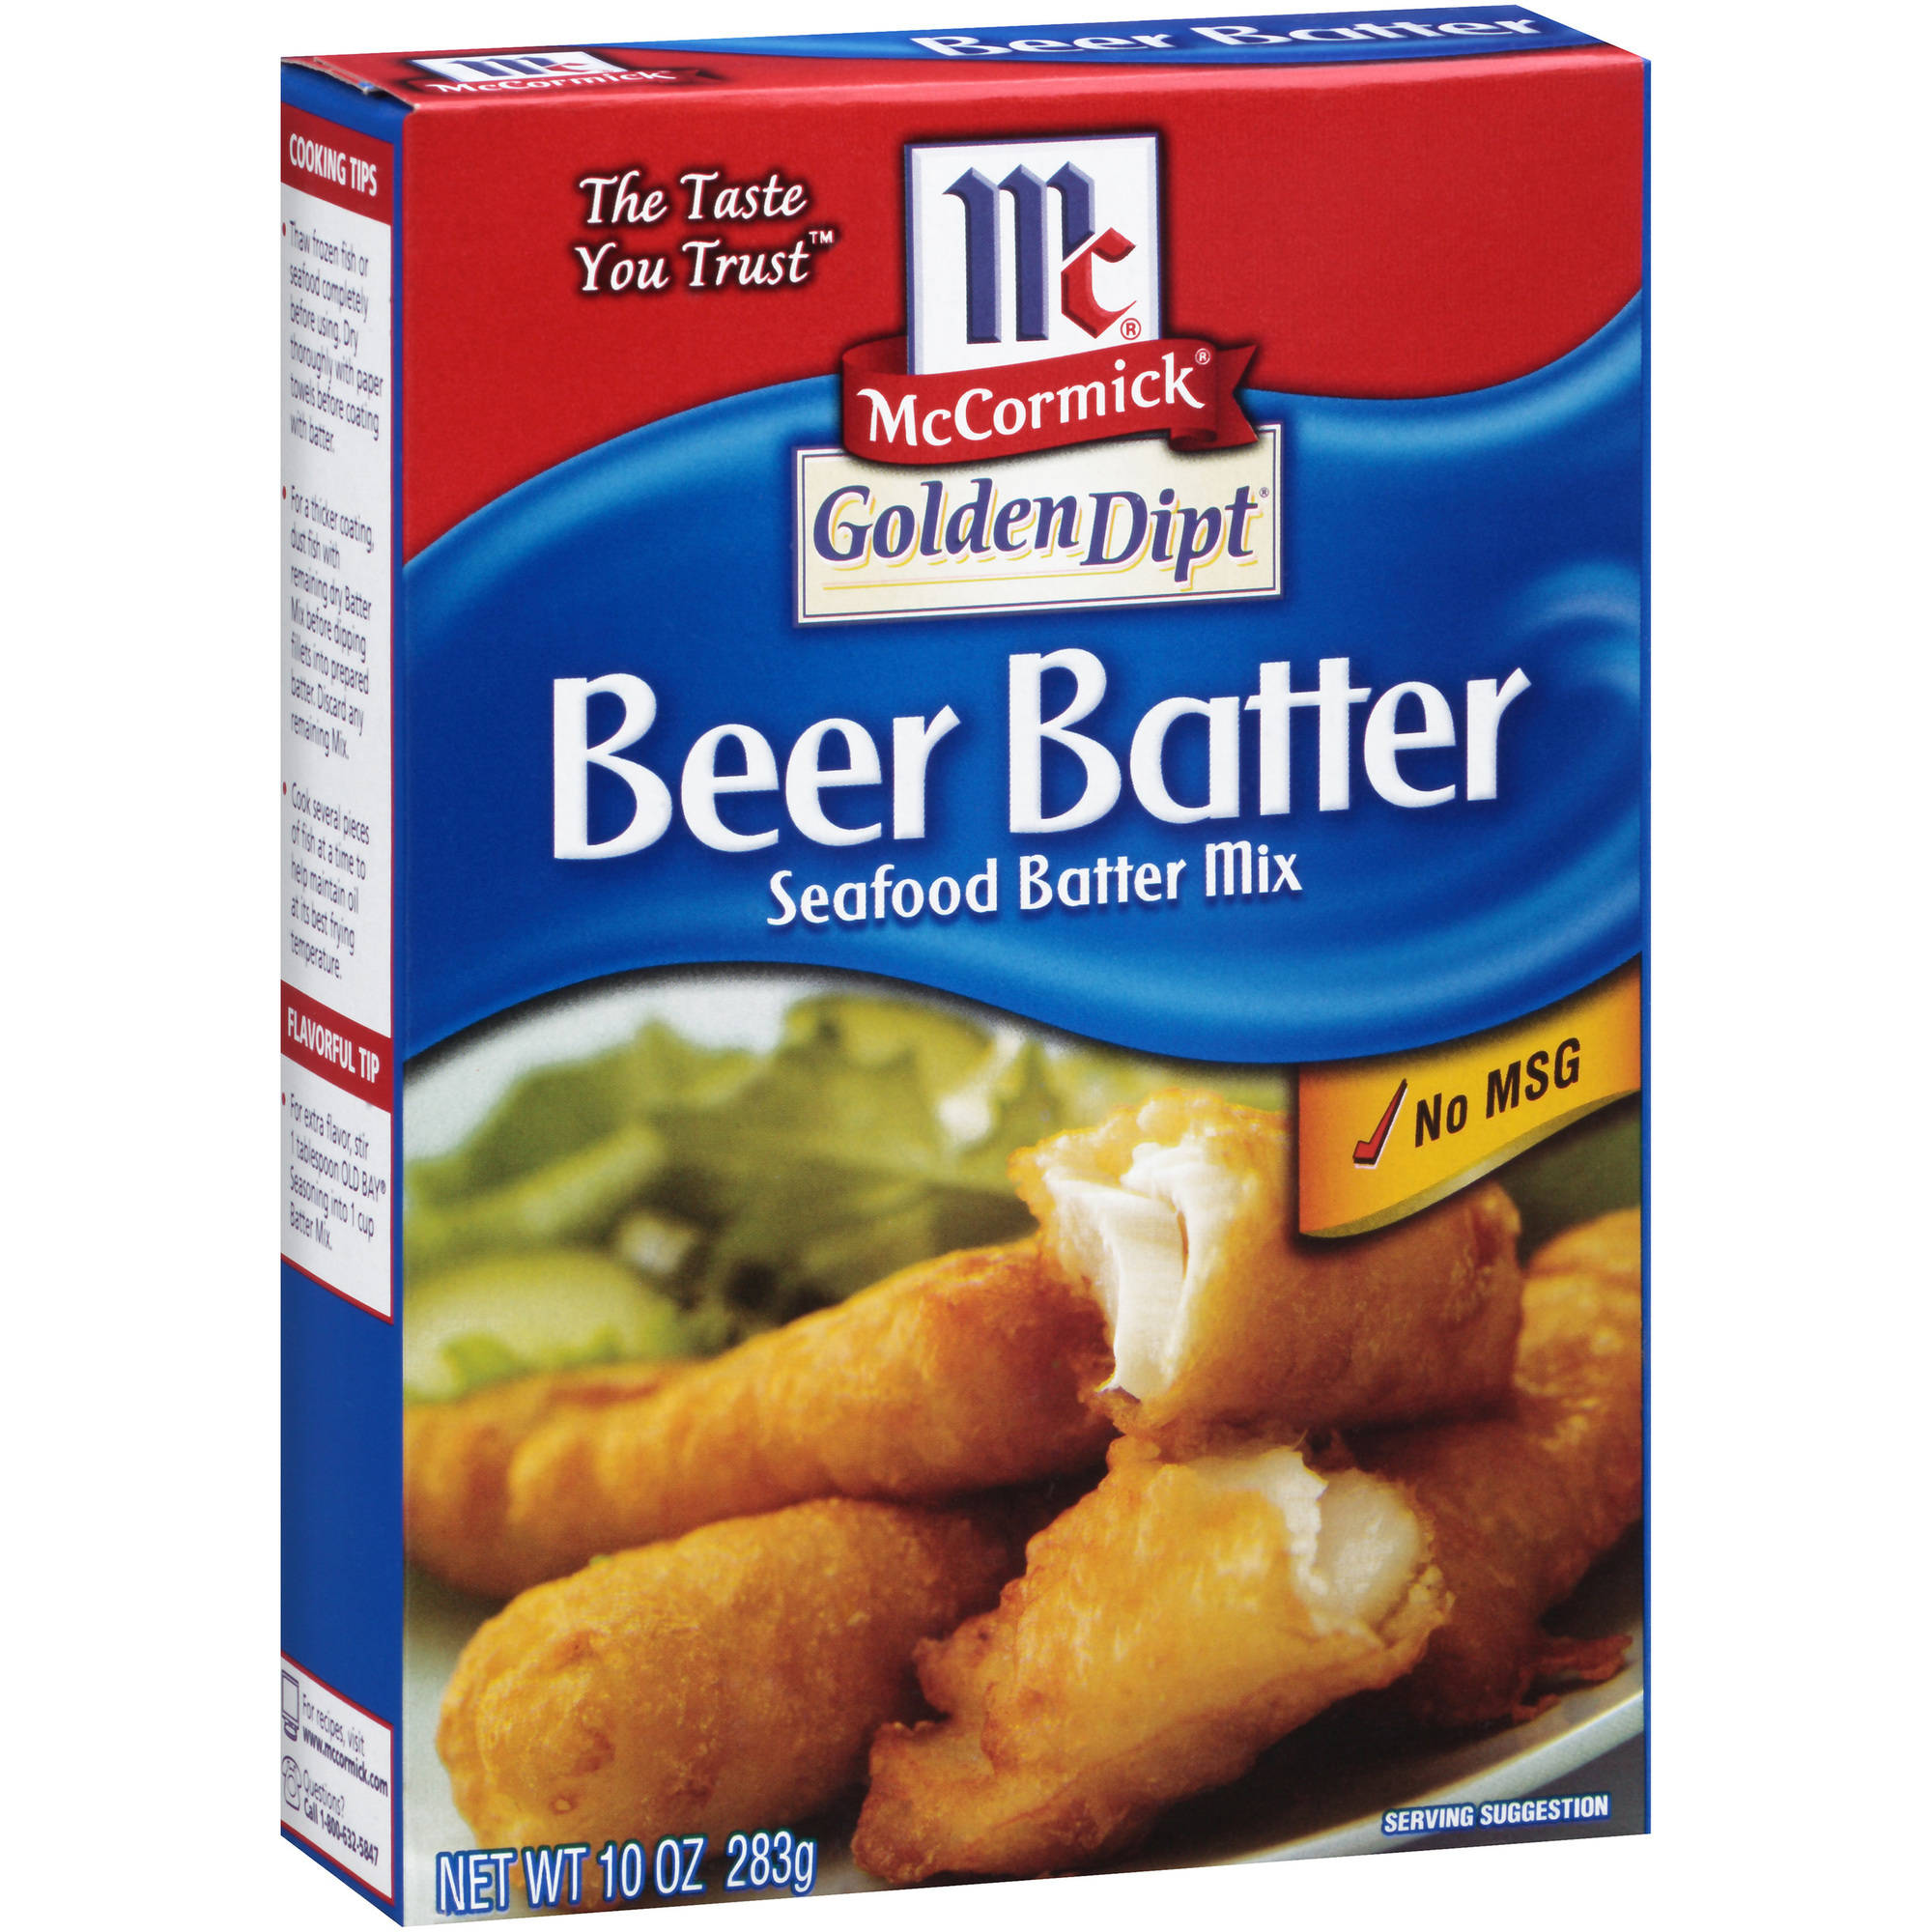 McCormick Golden Dipt Beer Batter Seafood Batter Mix, 10 oz